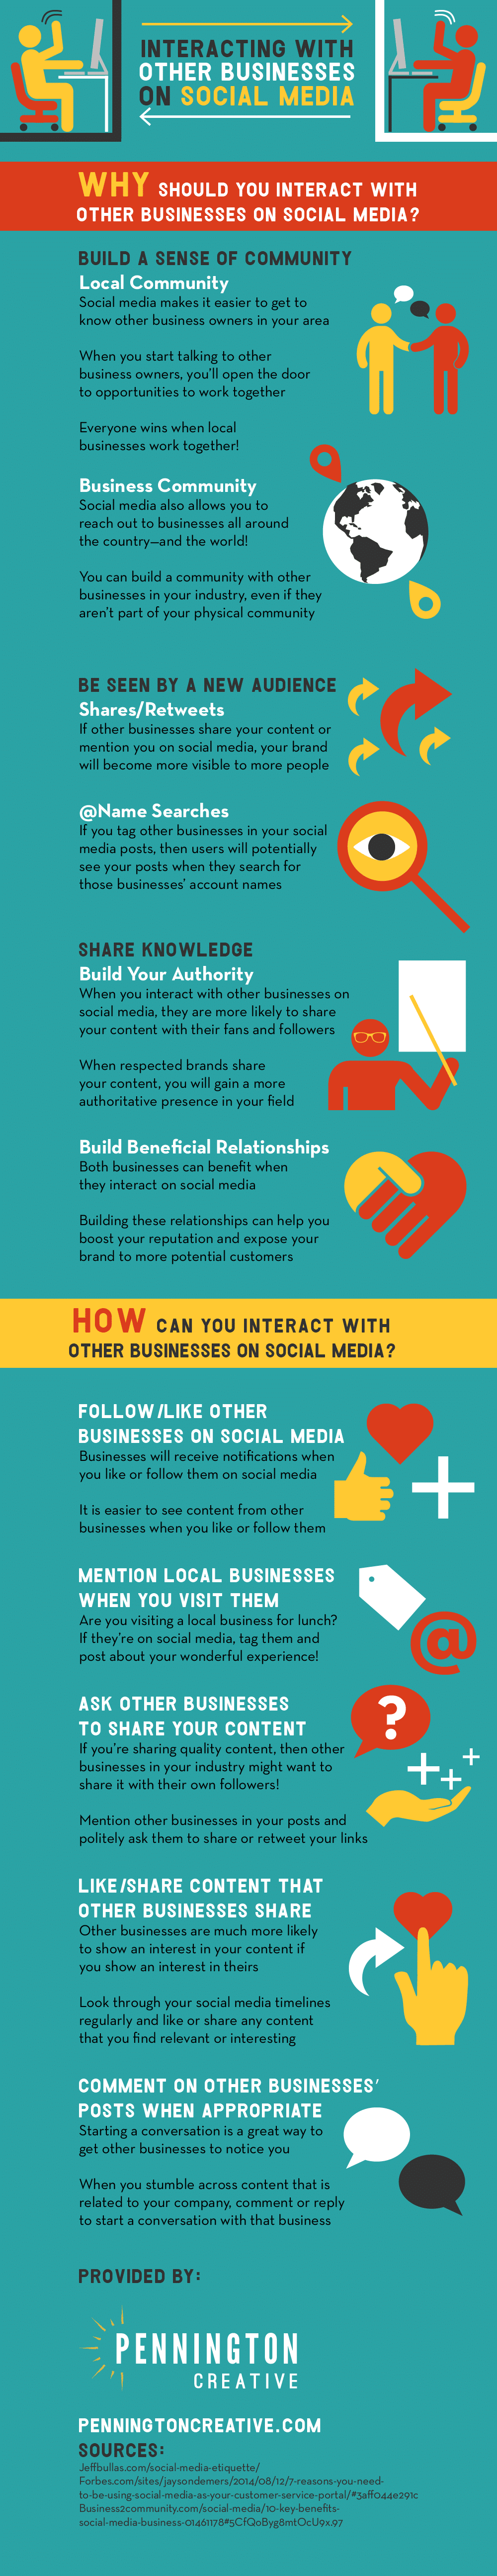 Infographic about B2B social media interactions.